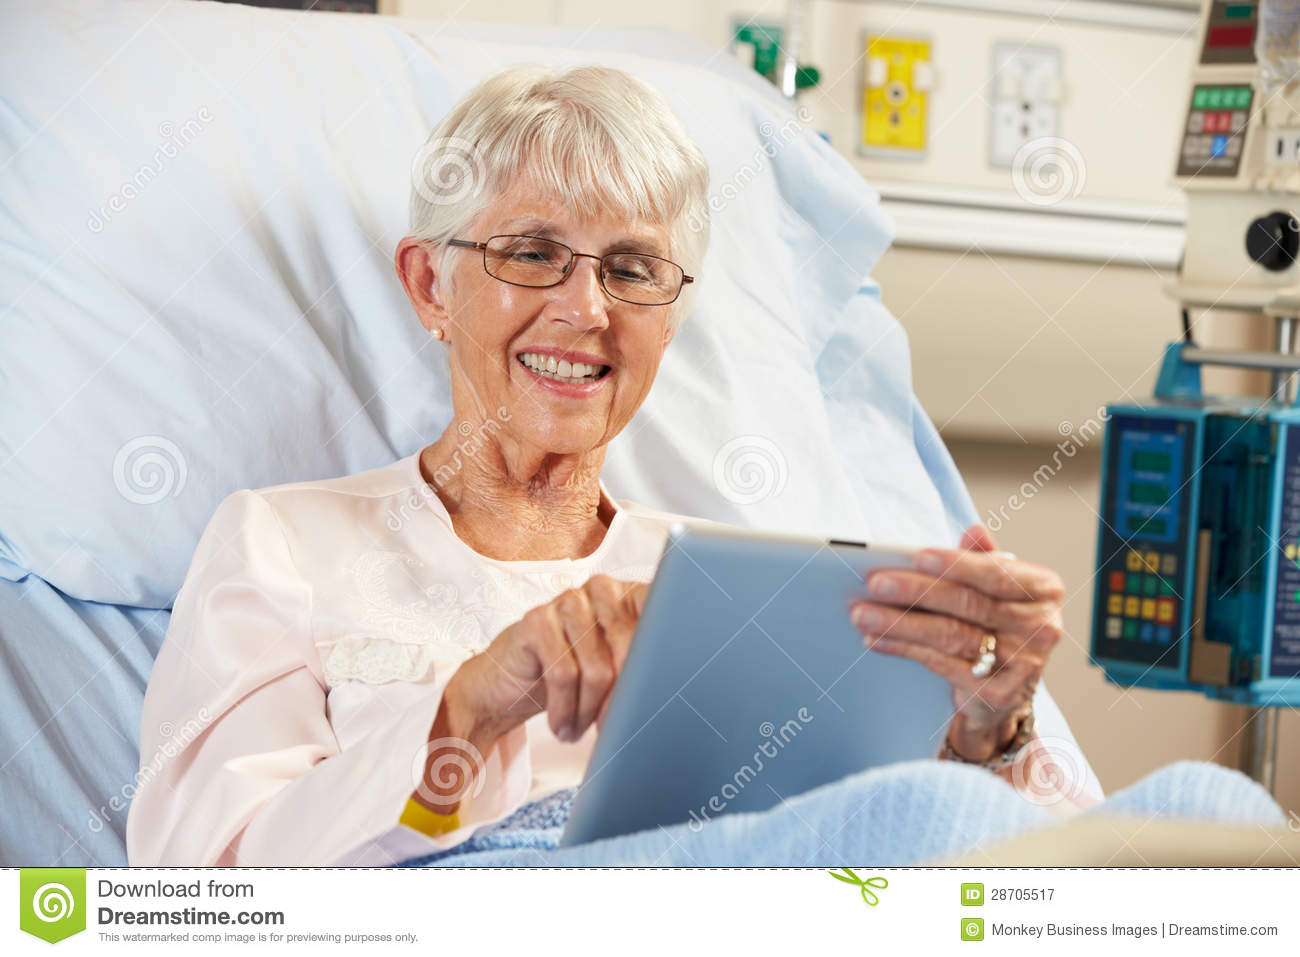 Patient In Hospital Pic : ... Free Stock Photography: Senior Female Patient Relaxing In Hospital Bed